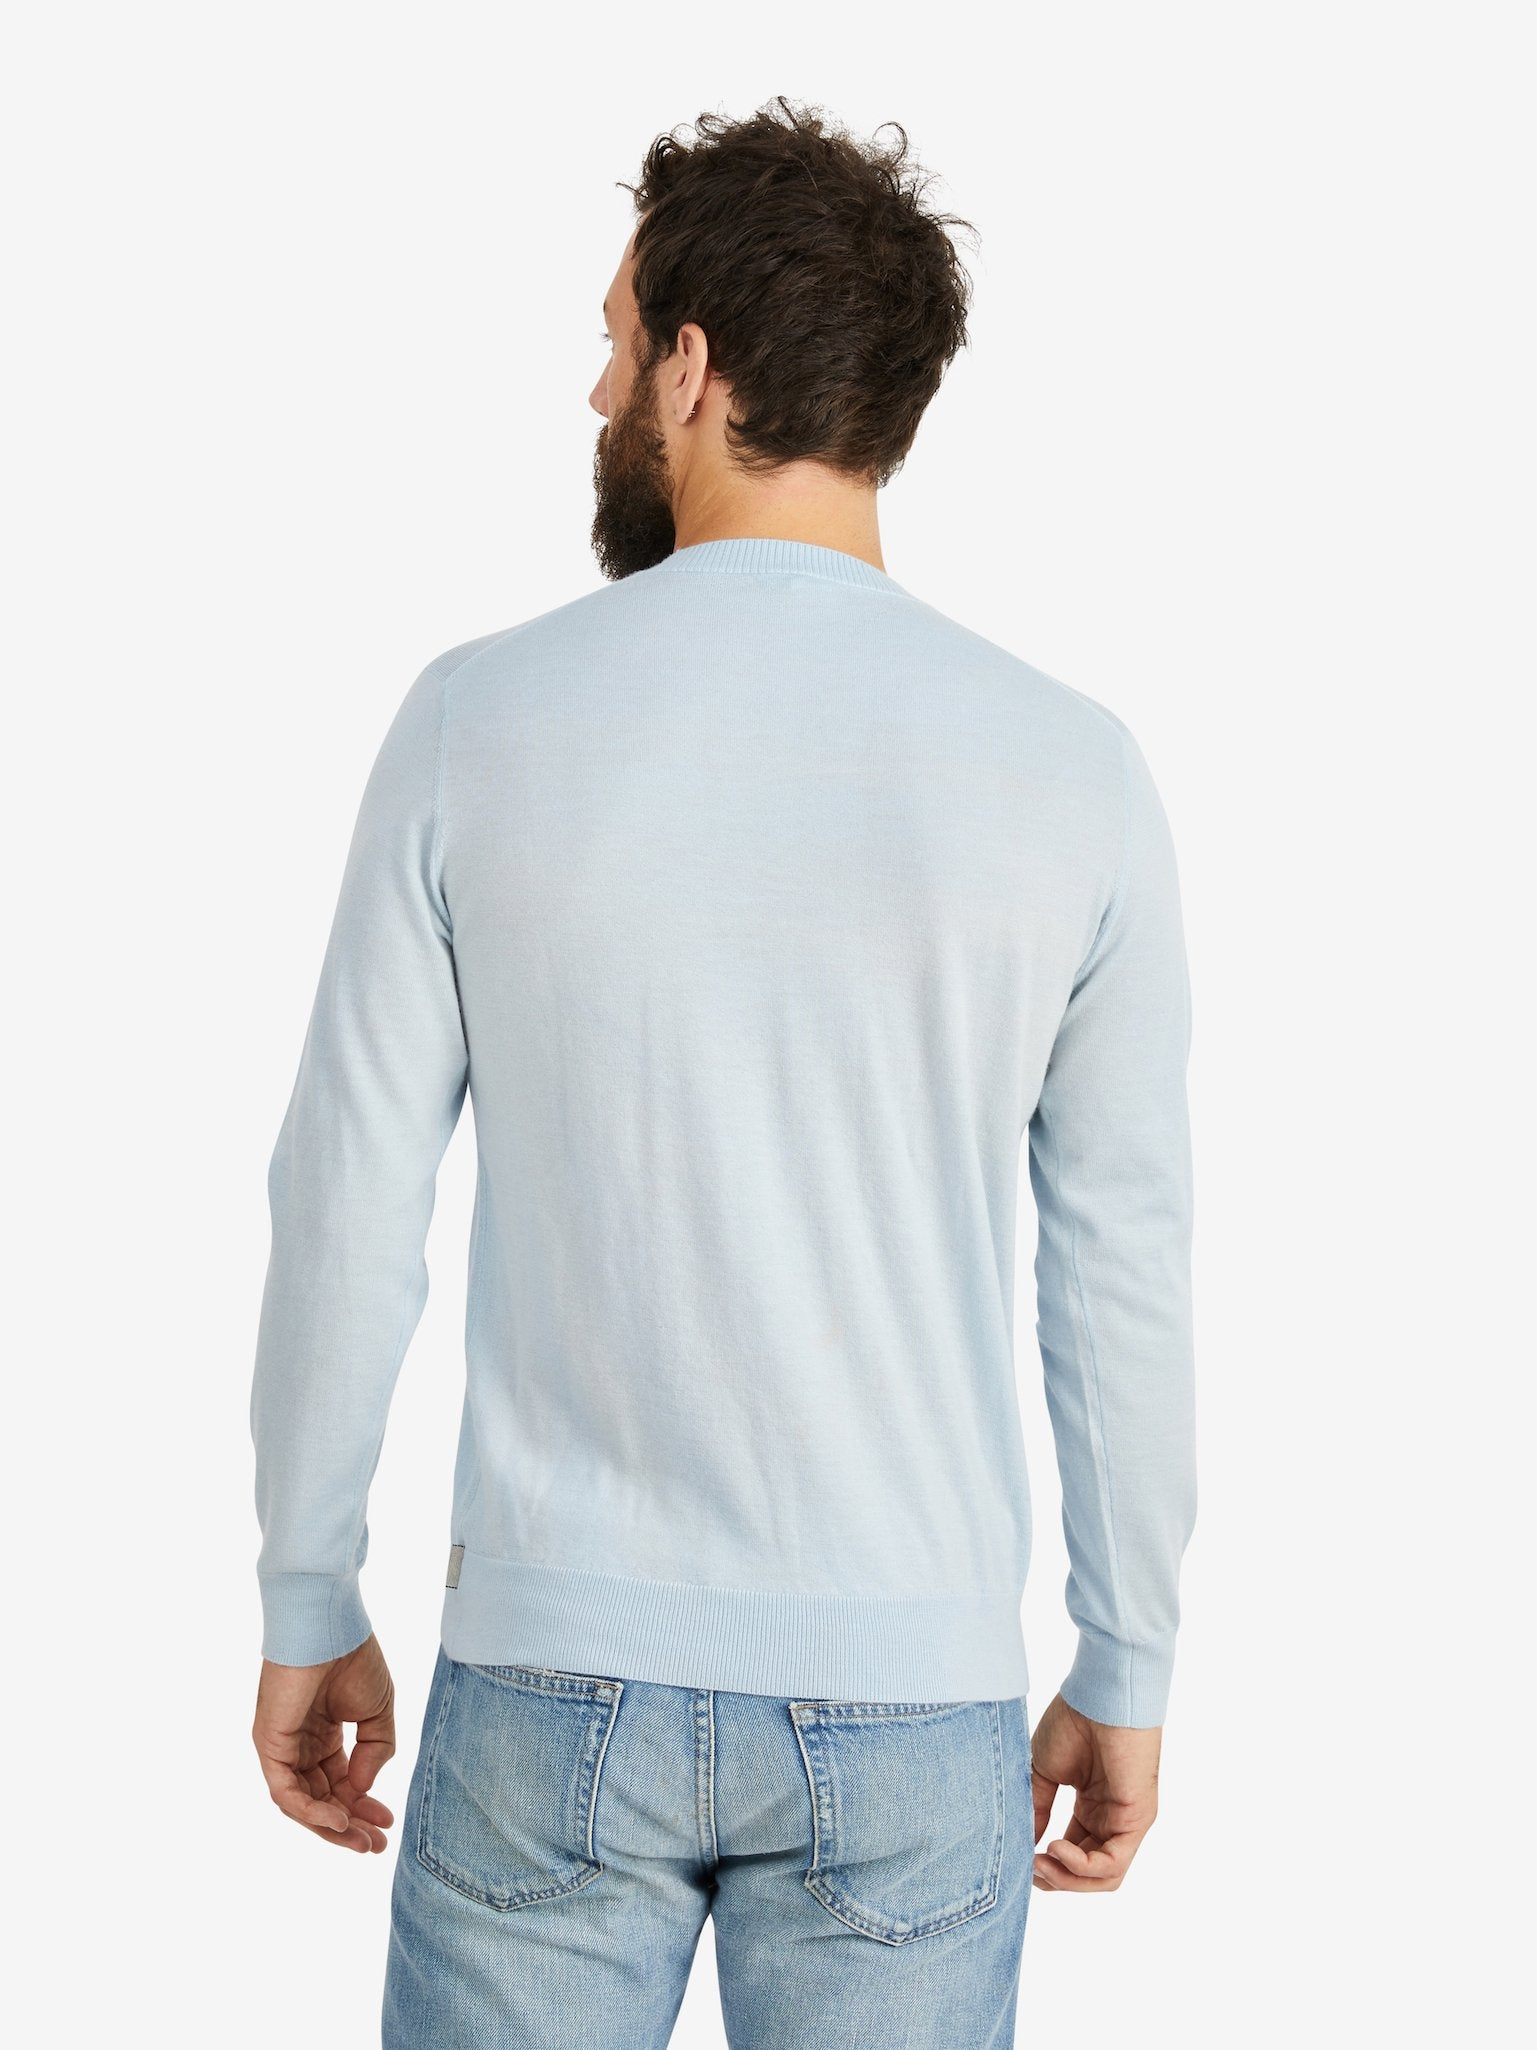 Hank-Perfect-Cashmere-Sage-Fine-Gauge-Crew-Sweater